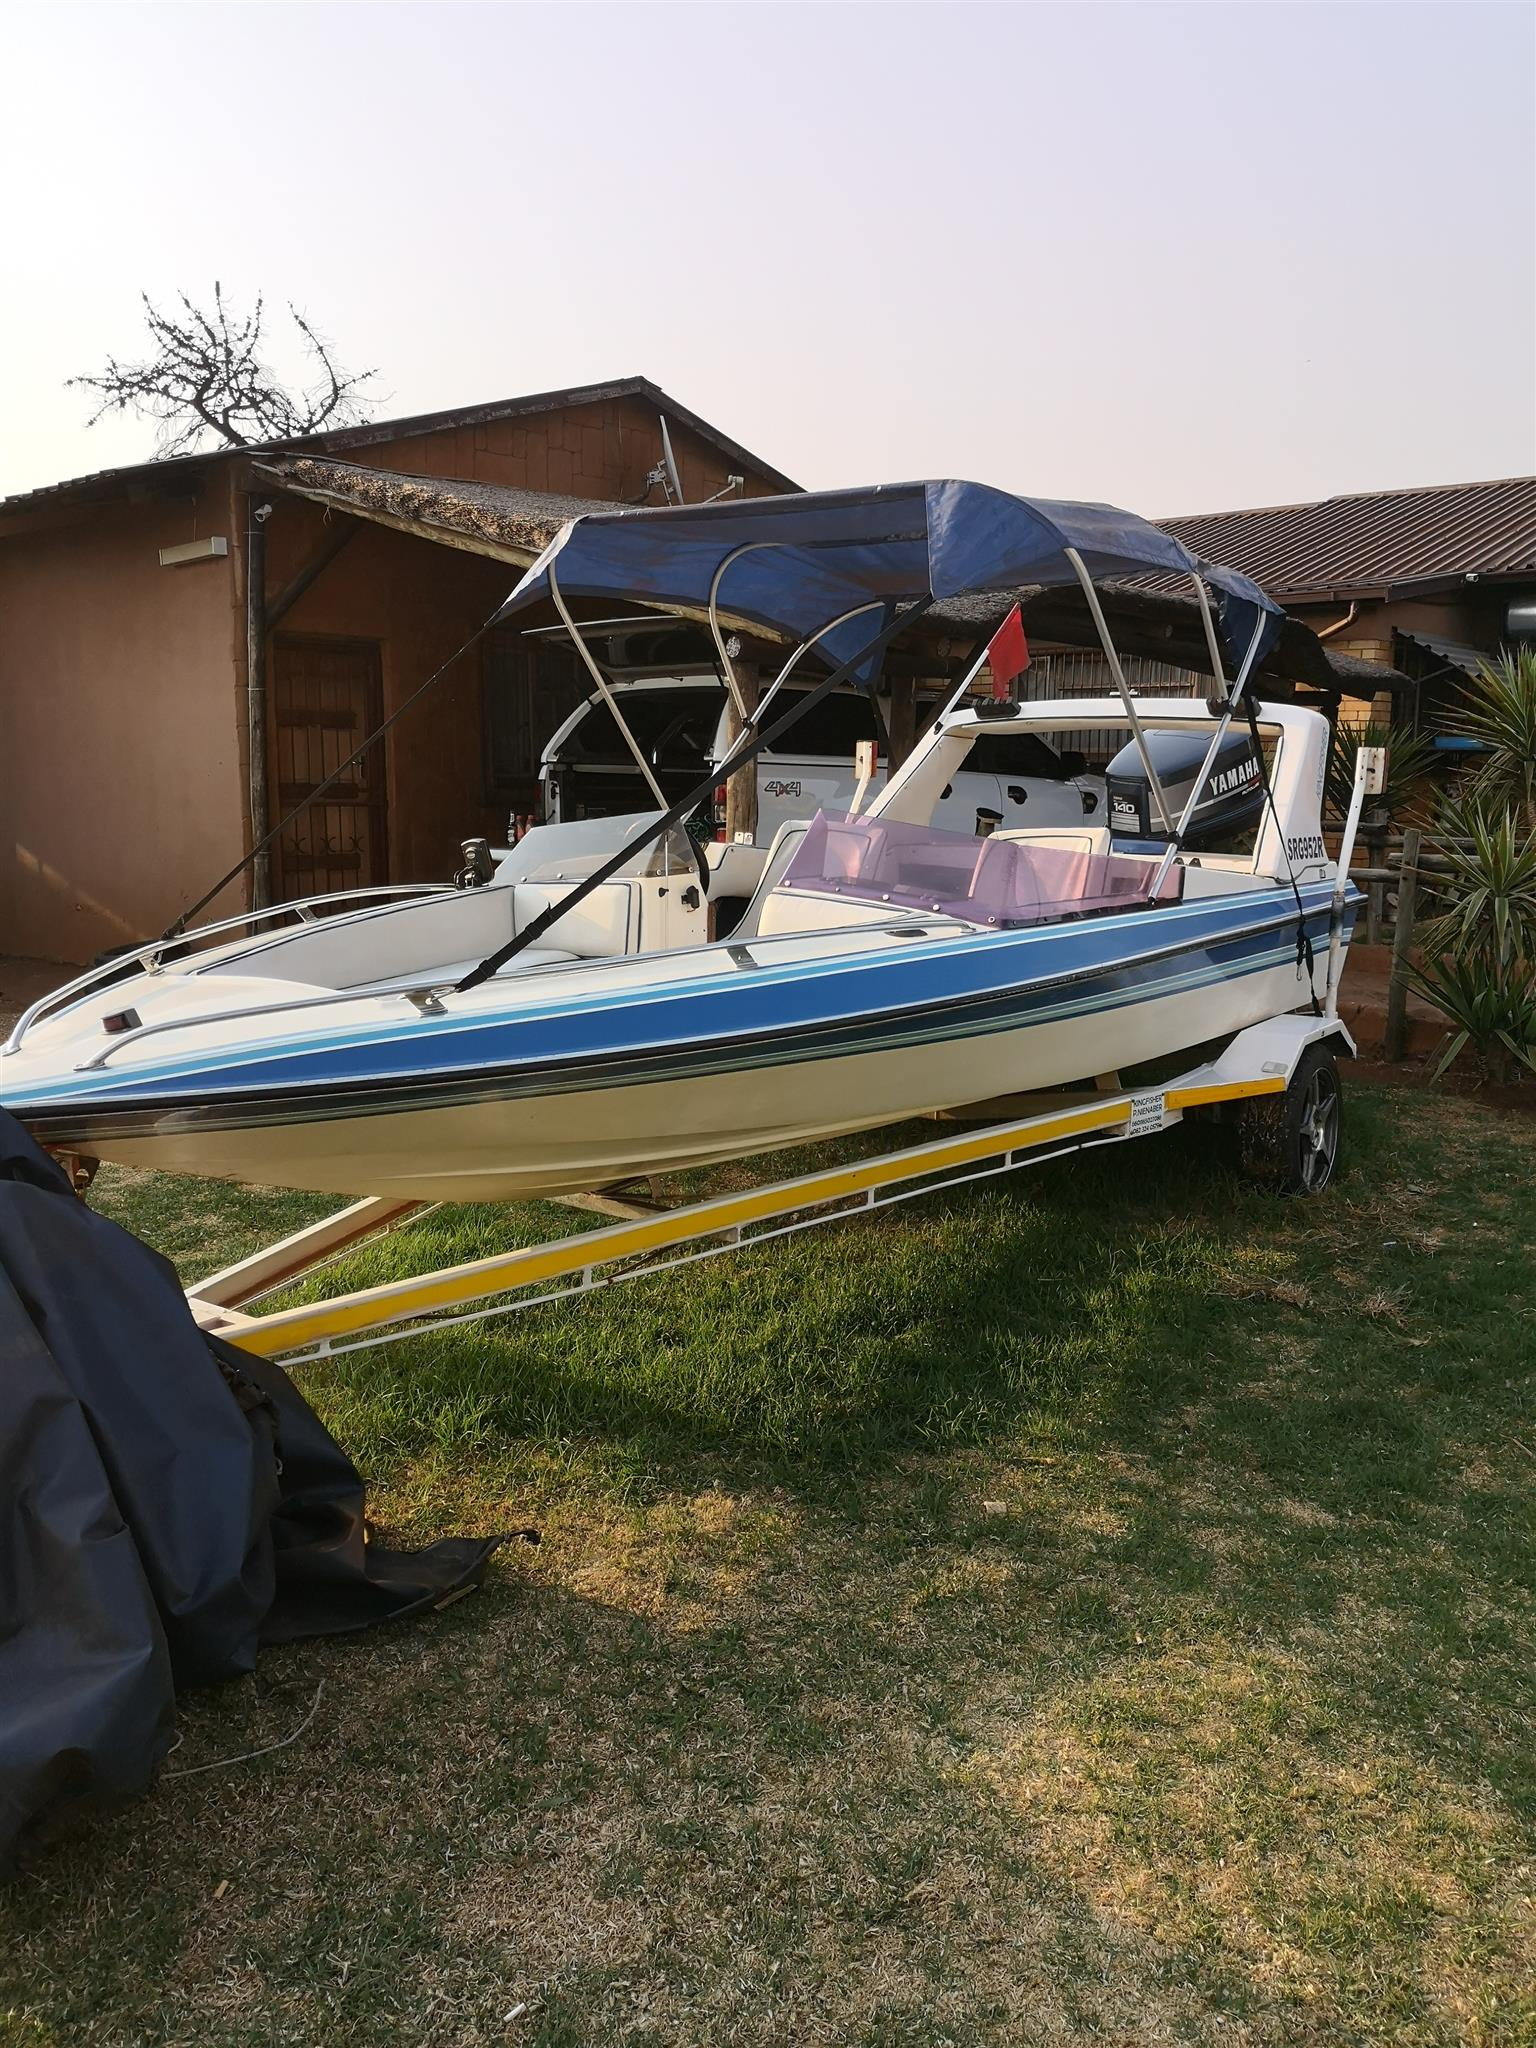 Swift 170 speedboat with a 140 Yamaha two stroke engin